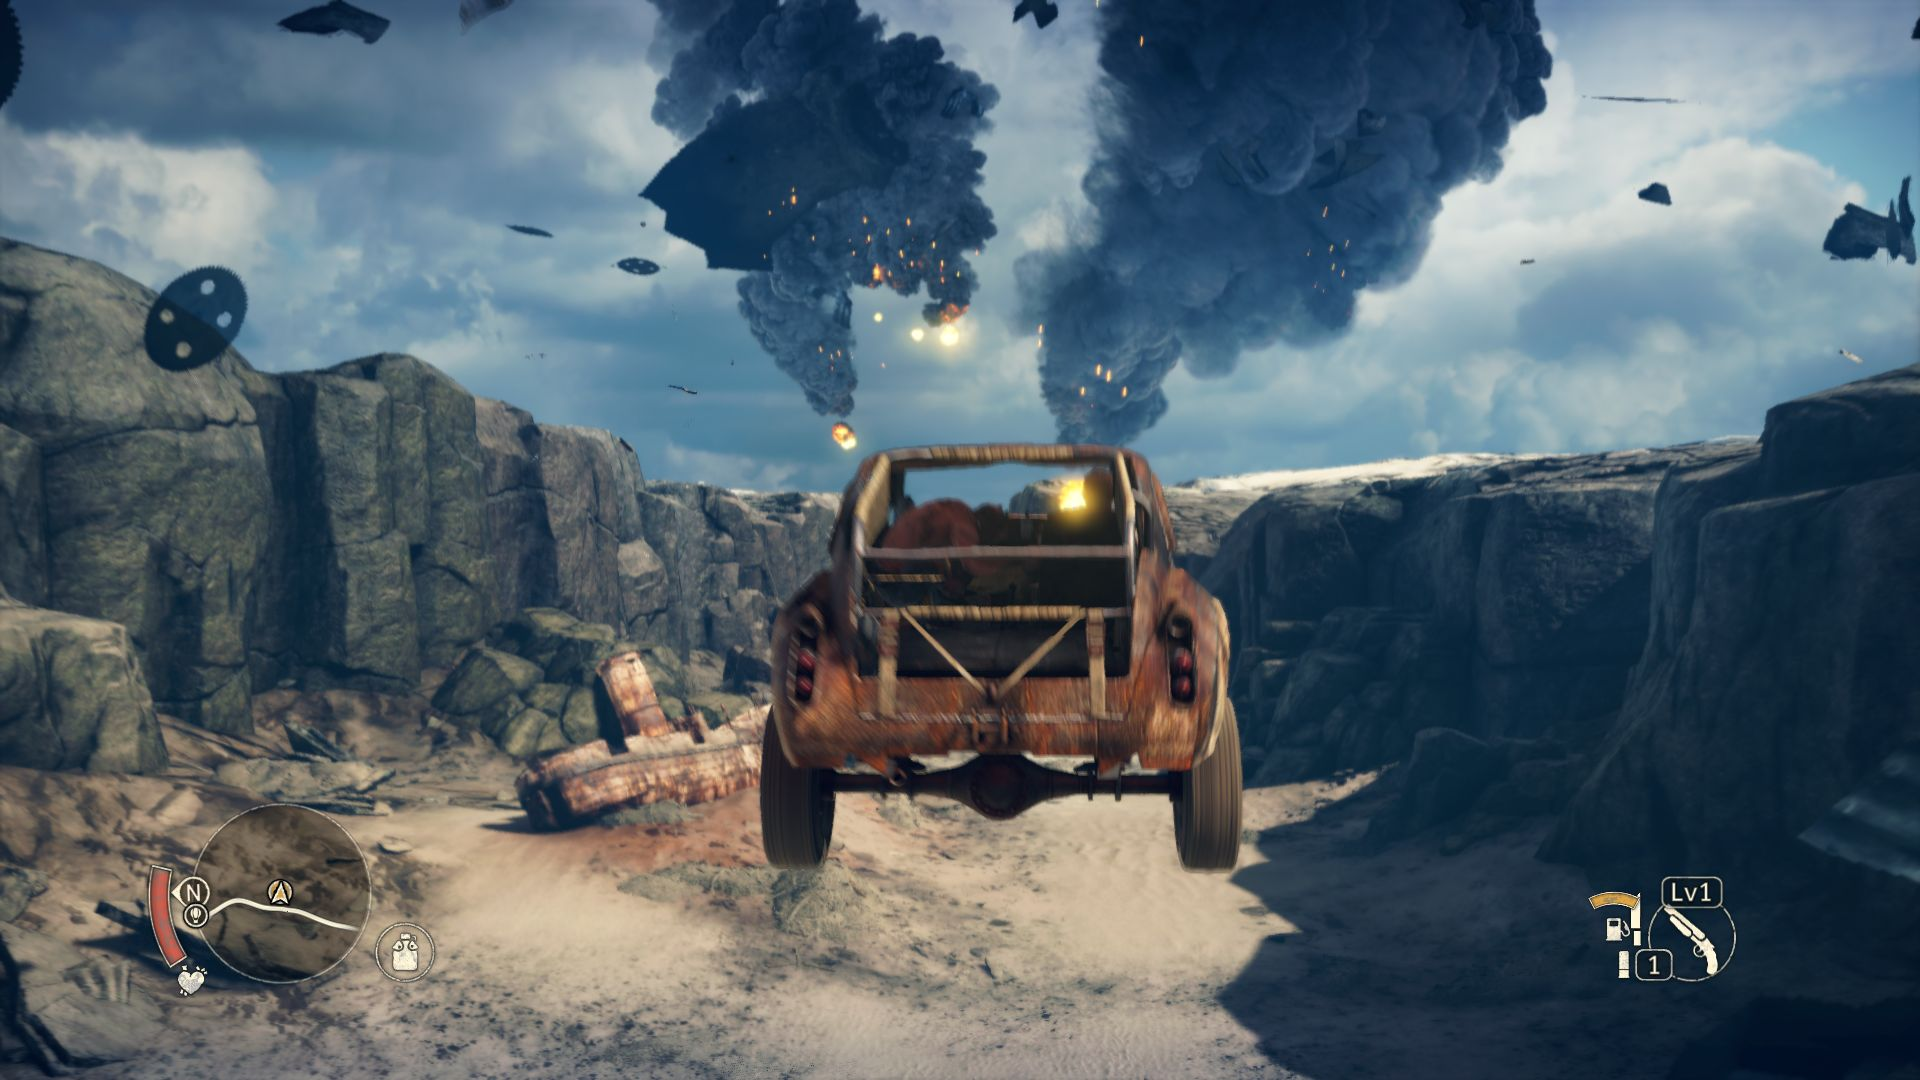 Despite Fantastic Gameplay Mad Max Feels Repetitive As The Missions Are Always Quite Similar Destroy X Find Y Conquer Z Etc